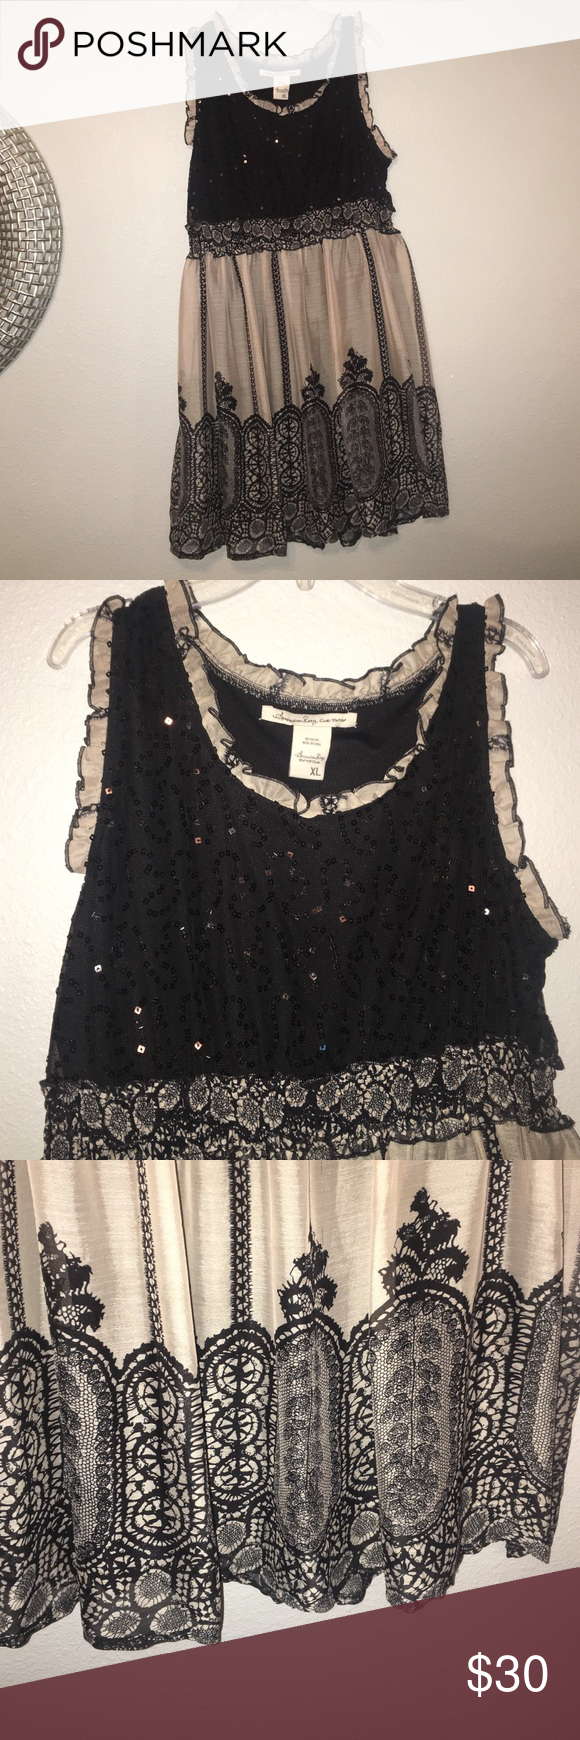 XL Tunic dress from Macy's. Black and taupe. Black and taupe. Never worn American Rag Tops Tunics